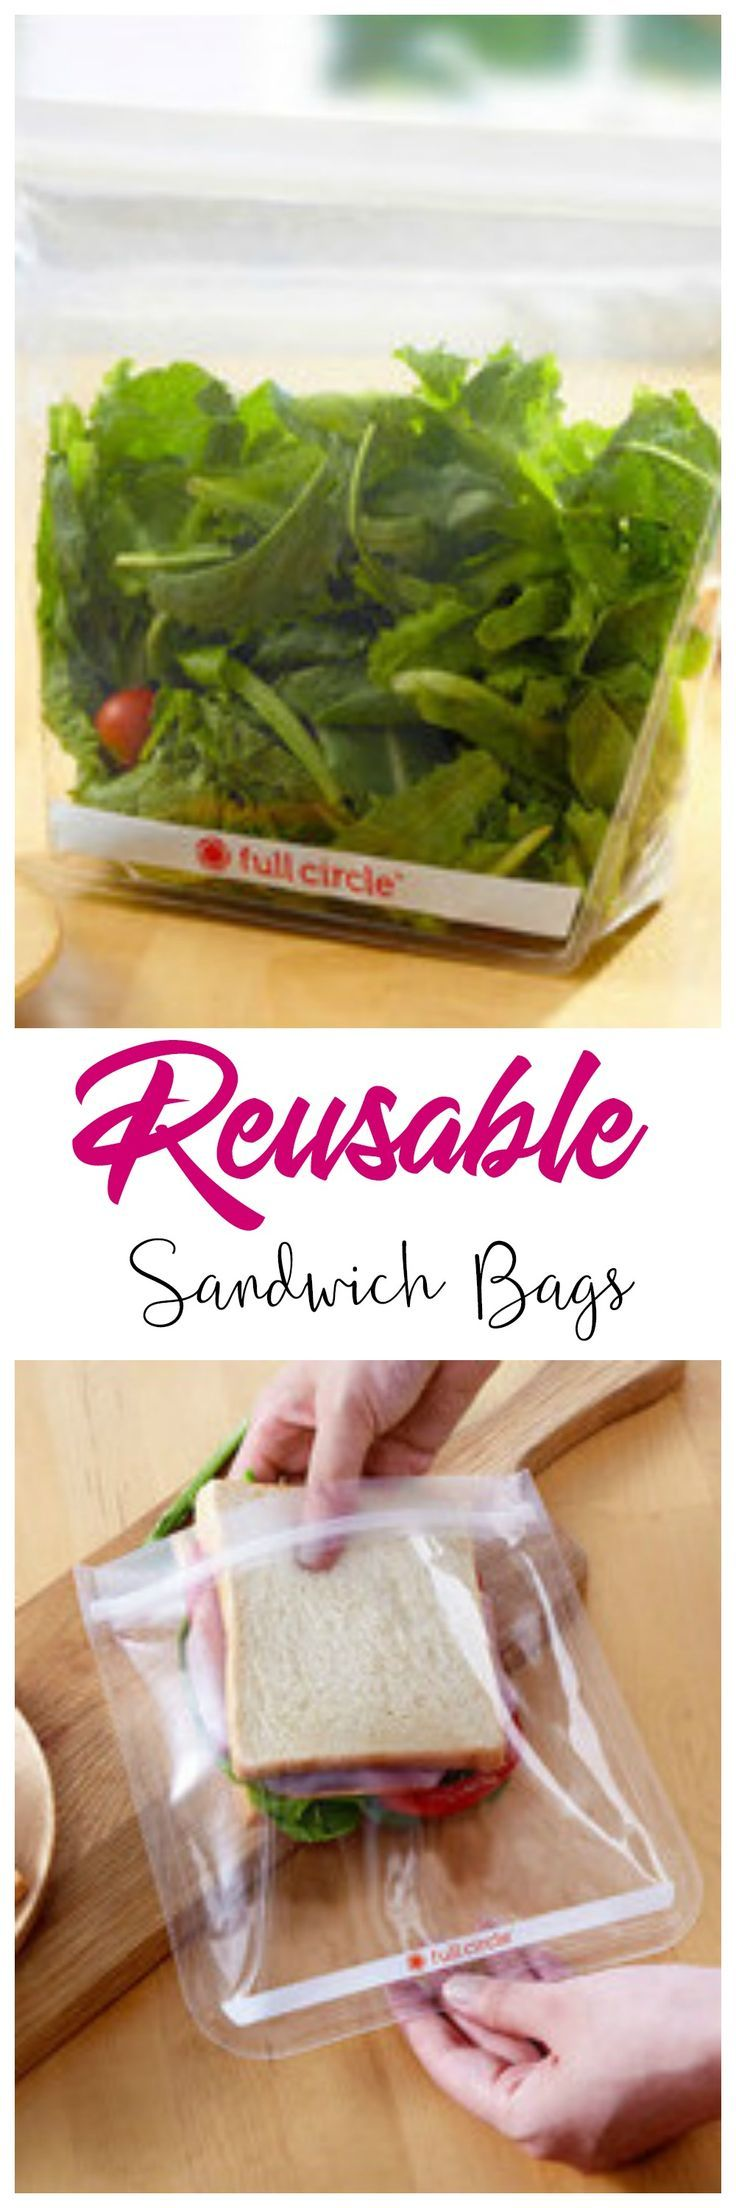 I so need to get myself some of these reusable sandwich bags. They will be a great way to reduce waste. (scheduled via http://www.tailwindapp.com?utm_source=pinterest&utm_medium=twpin)